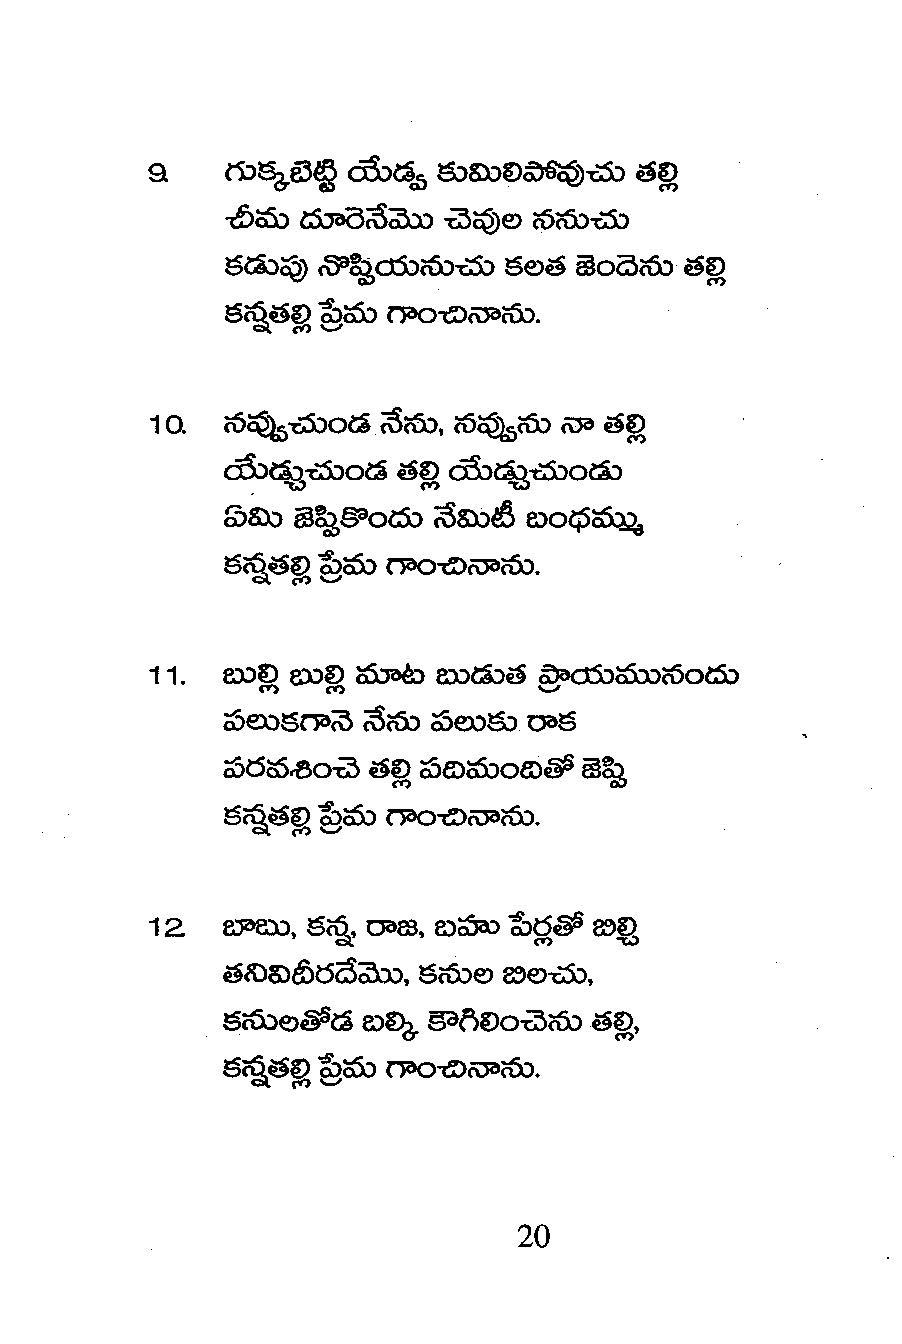 tamil language and classical telugu poetry Tamil is the only surviving classical language of the world+64  is that stupid  saying that telugu is great it takes many days to learn telugu but tamil in one  hour+62  the most poetic languages in india are probably malayalam and  kannada.